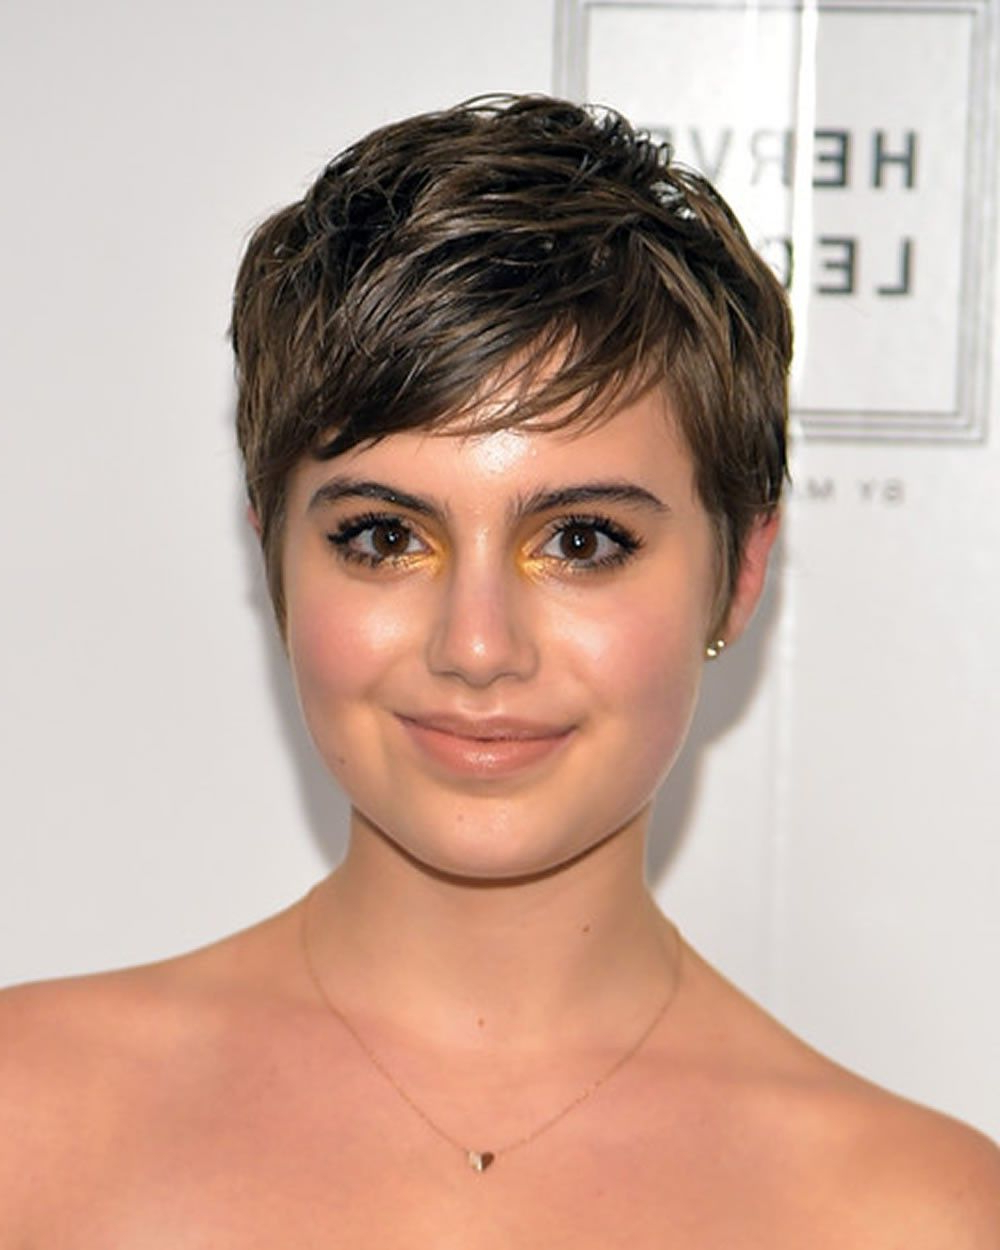 20 Best Ideas of Cropped Haircuts For A Round Face